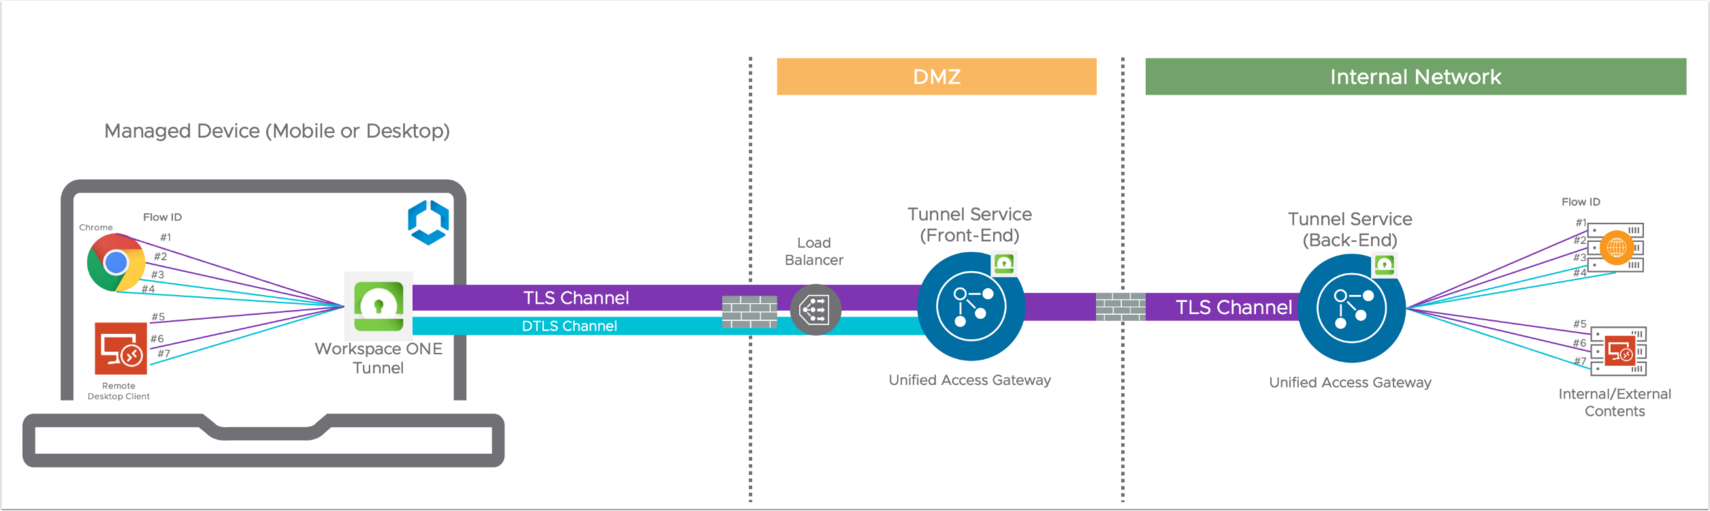 Communication from Tunnel Service front-end to back-end through TLS Channel only